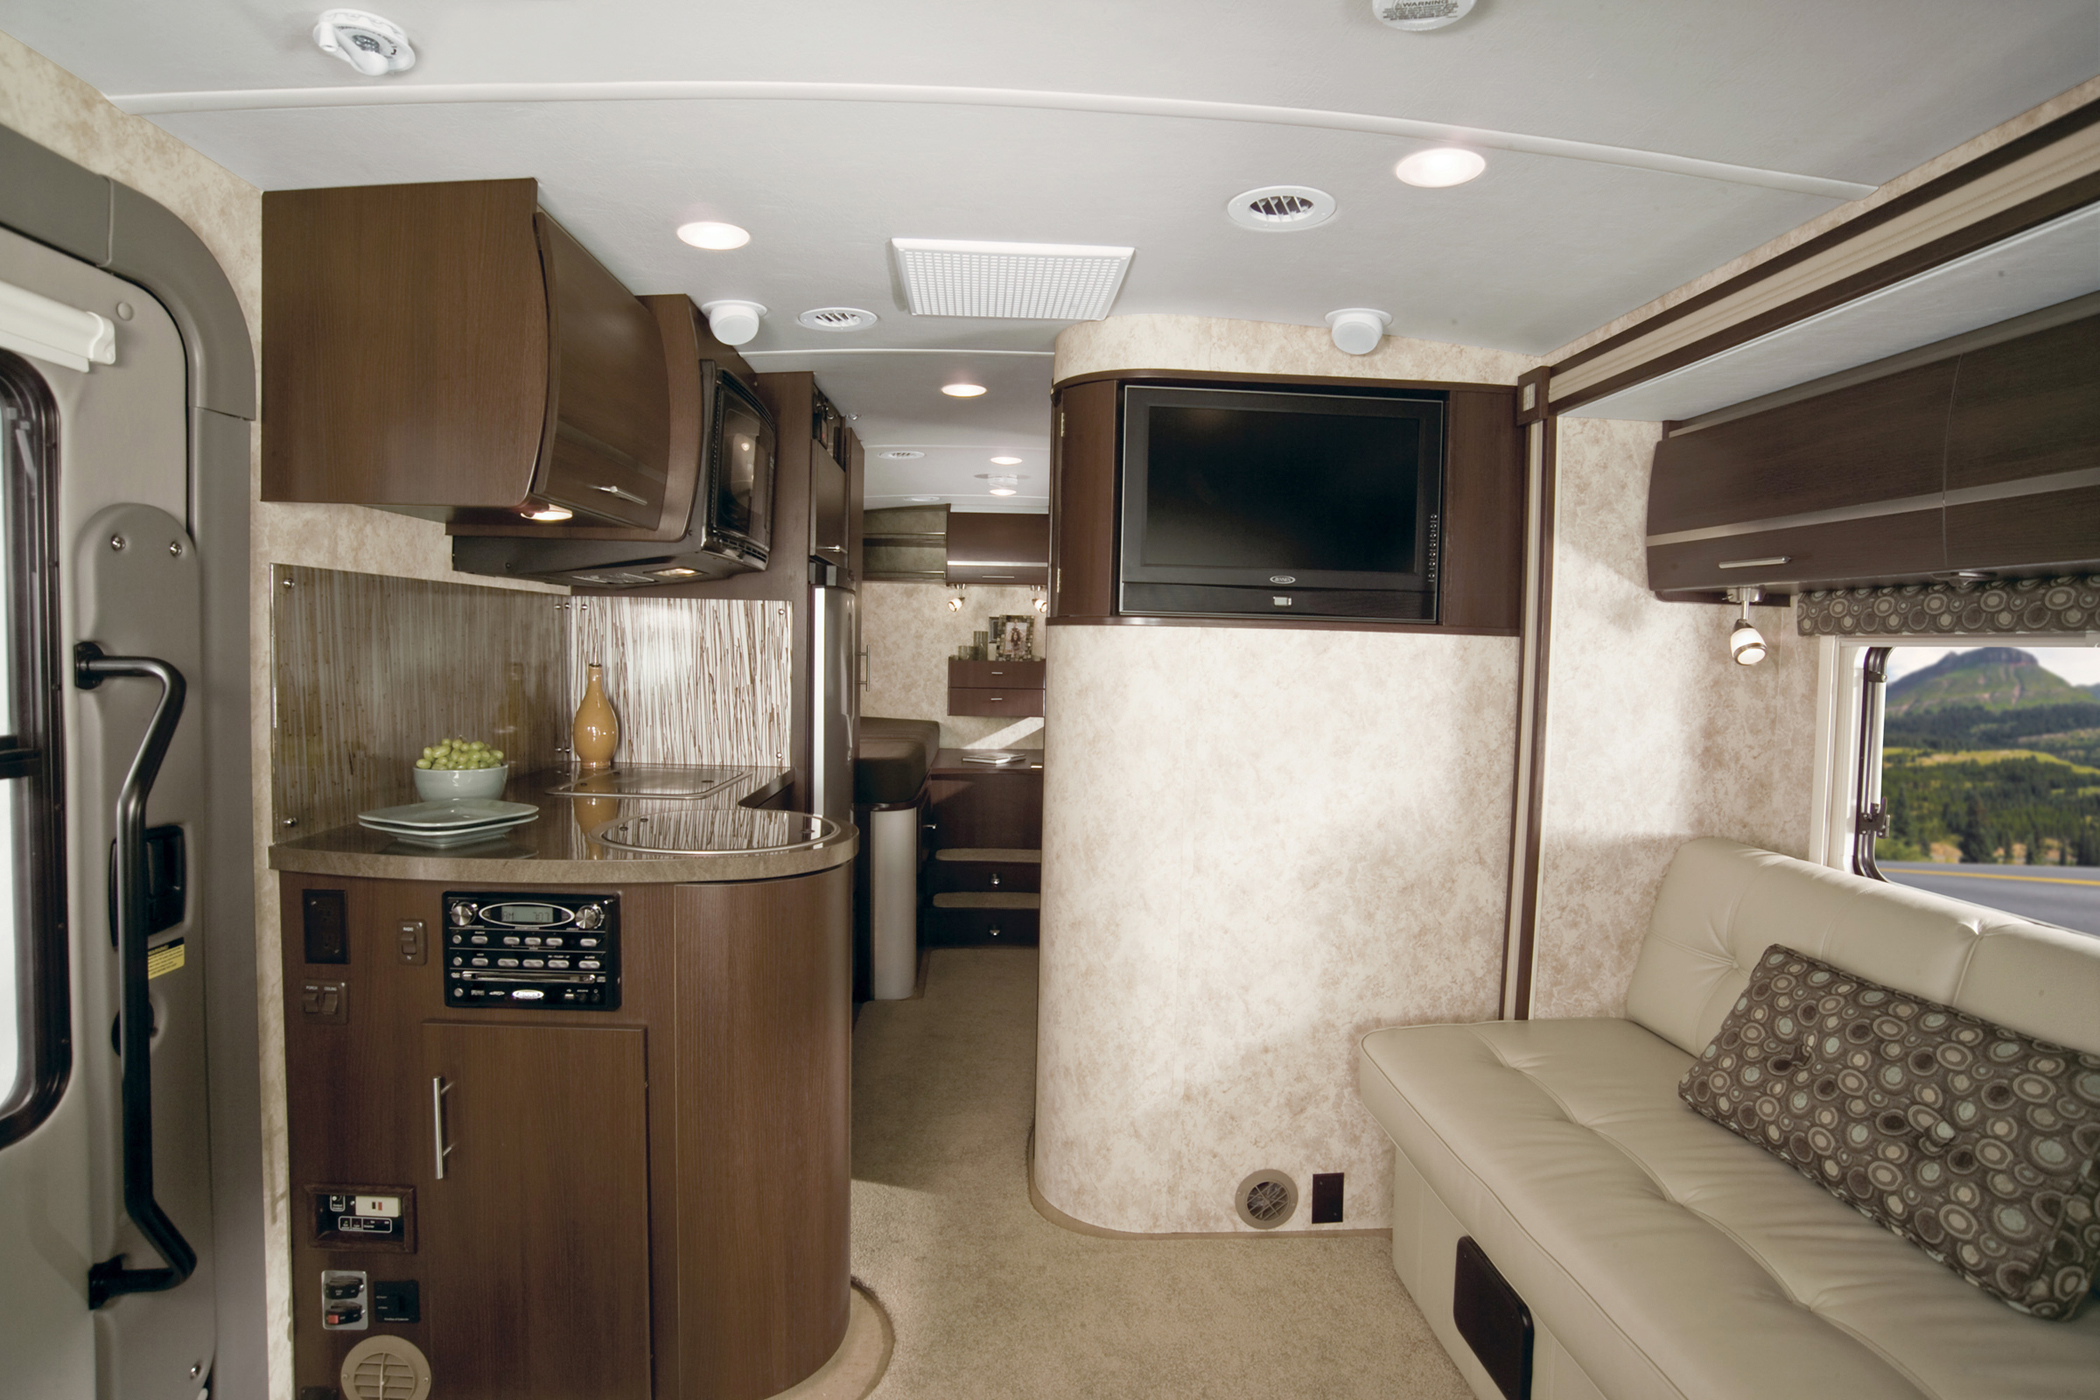 New Towable Vehicles Expand User Options In Downsized RV Choices